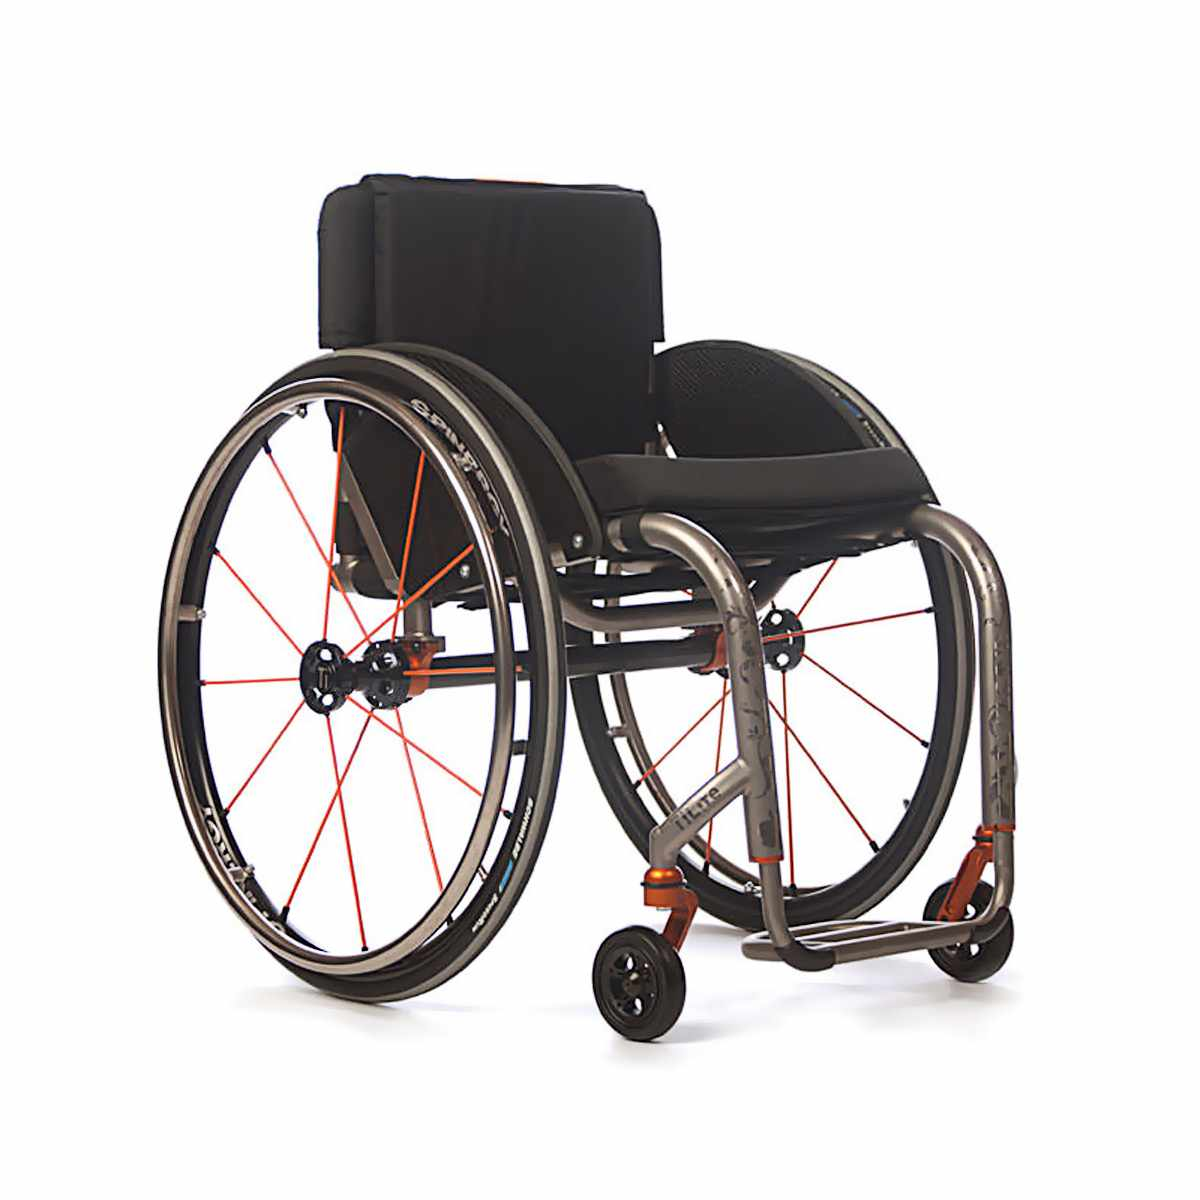 TiLite ZR series rigid ultralight wheelchair